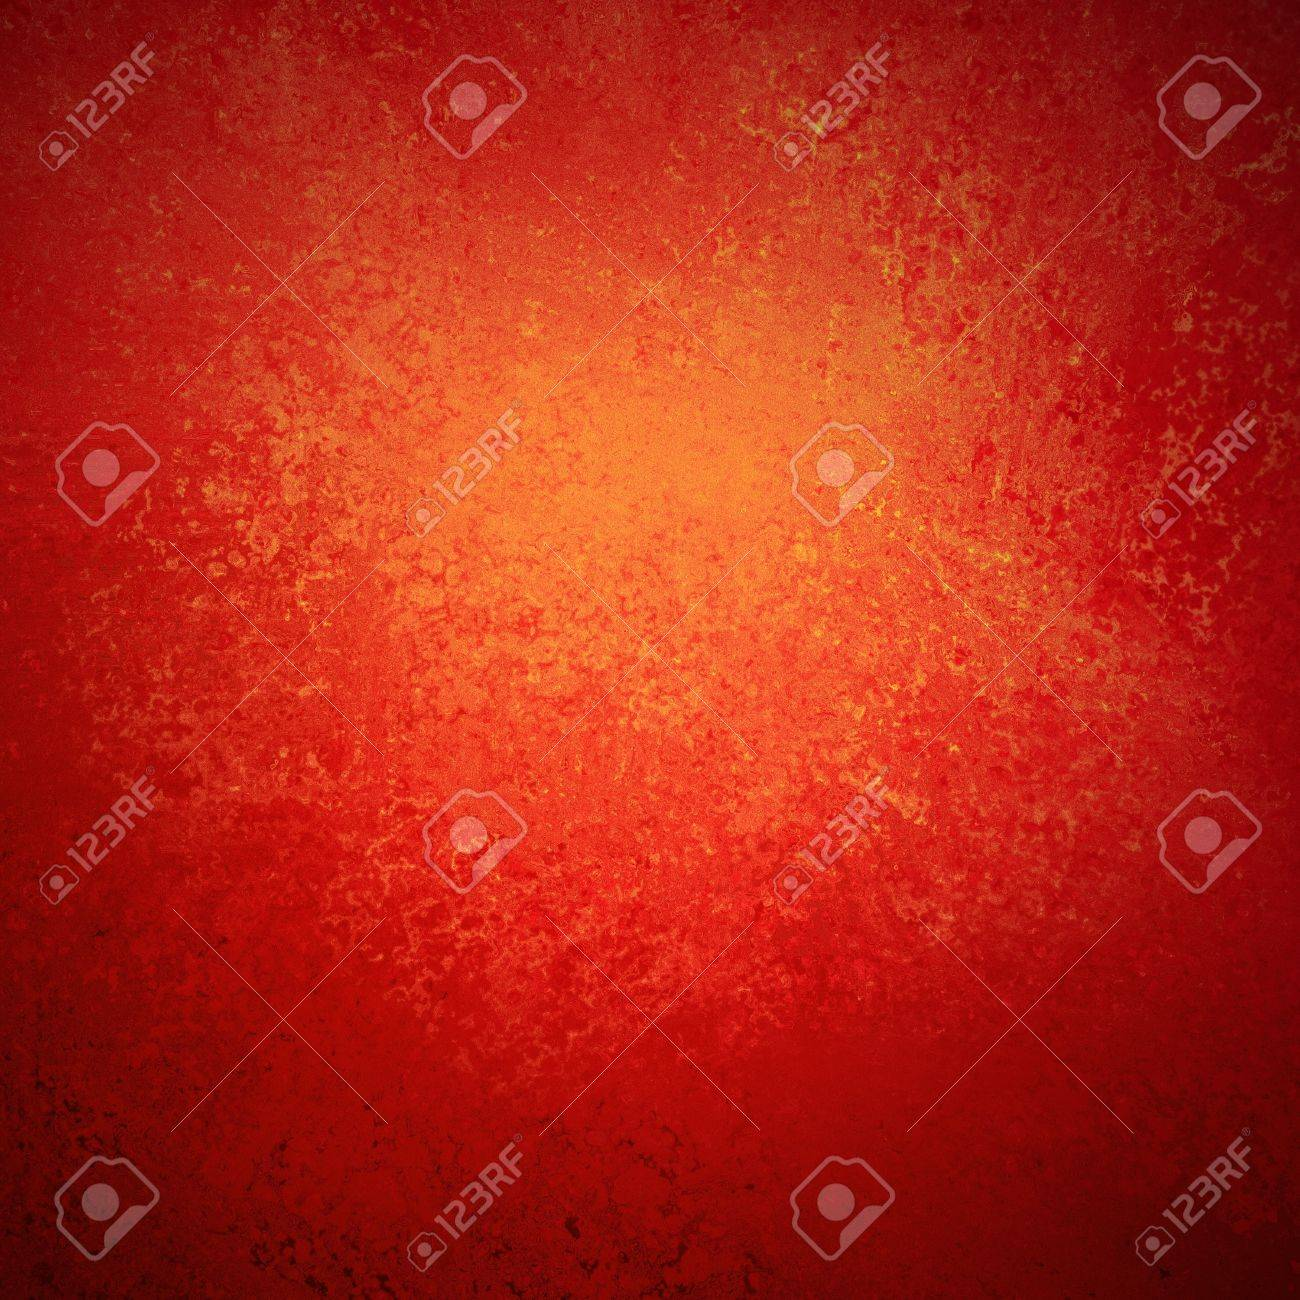 abstract red background orange center, vintage grunge background texture design of elegant antique holiday Christmas background paper or web background templates, grungy old background paint wall Stock Photo - 19058480